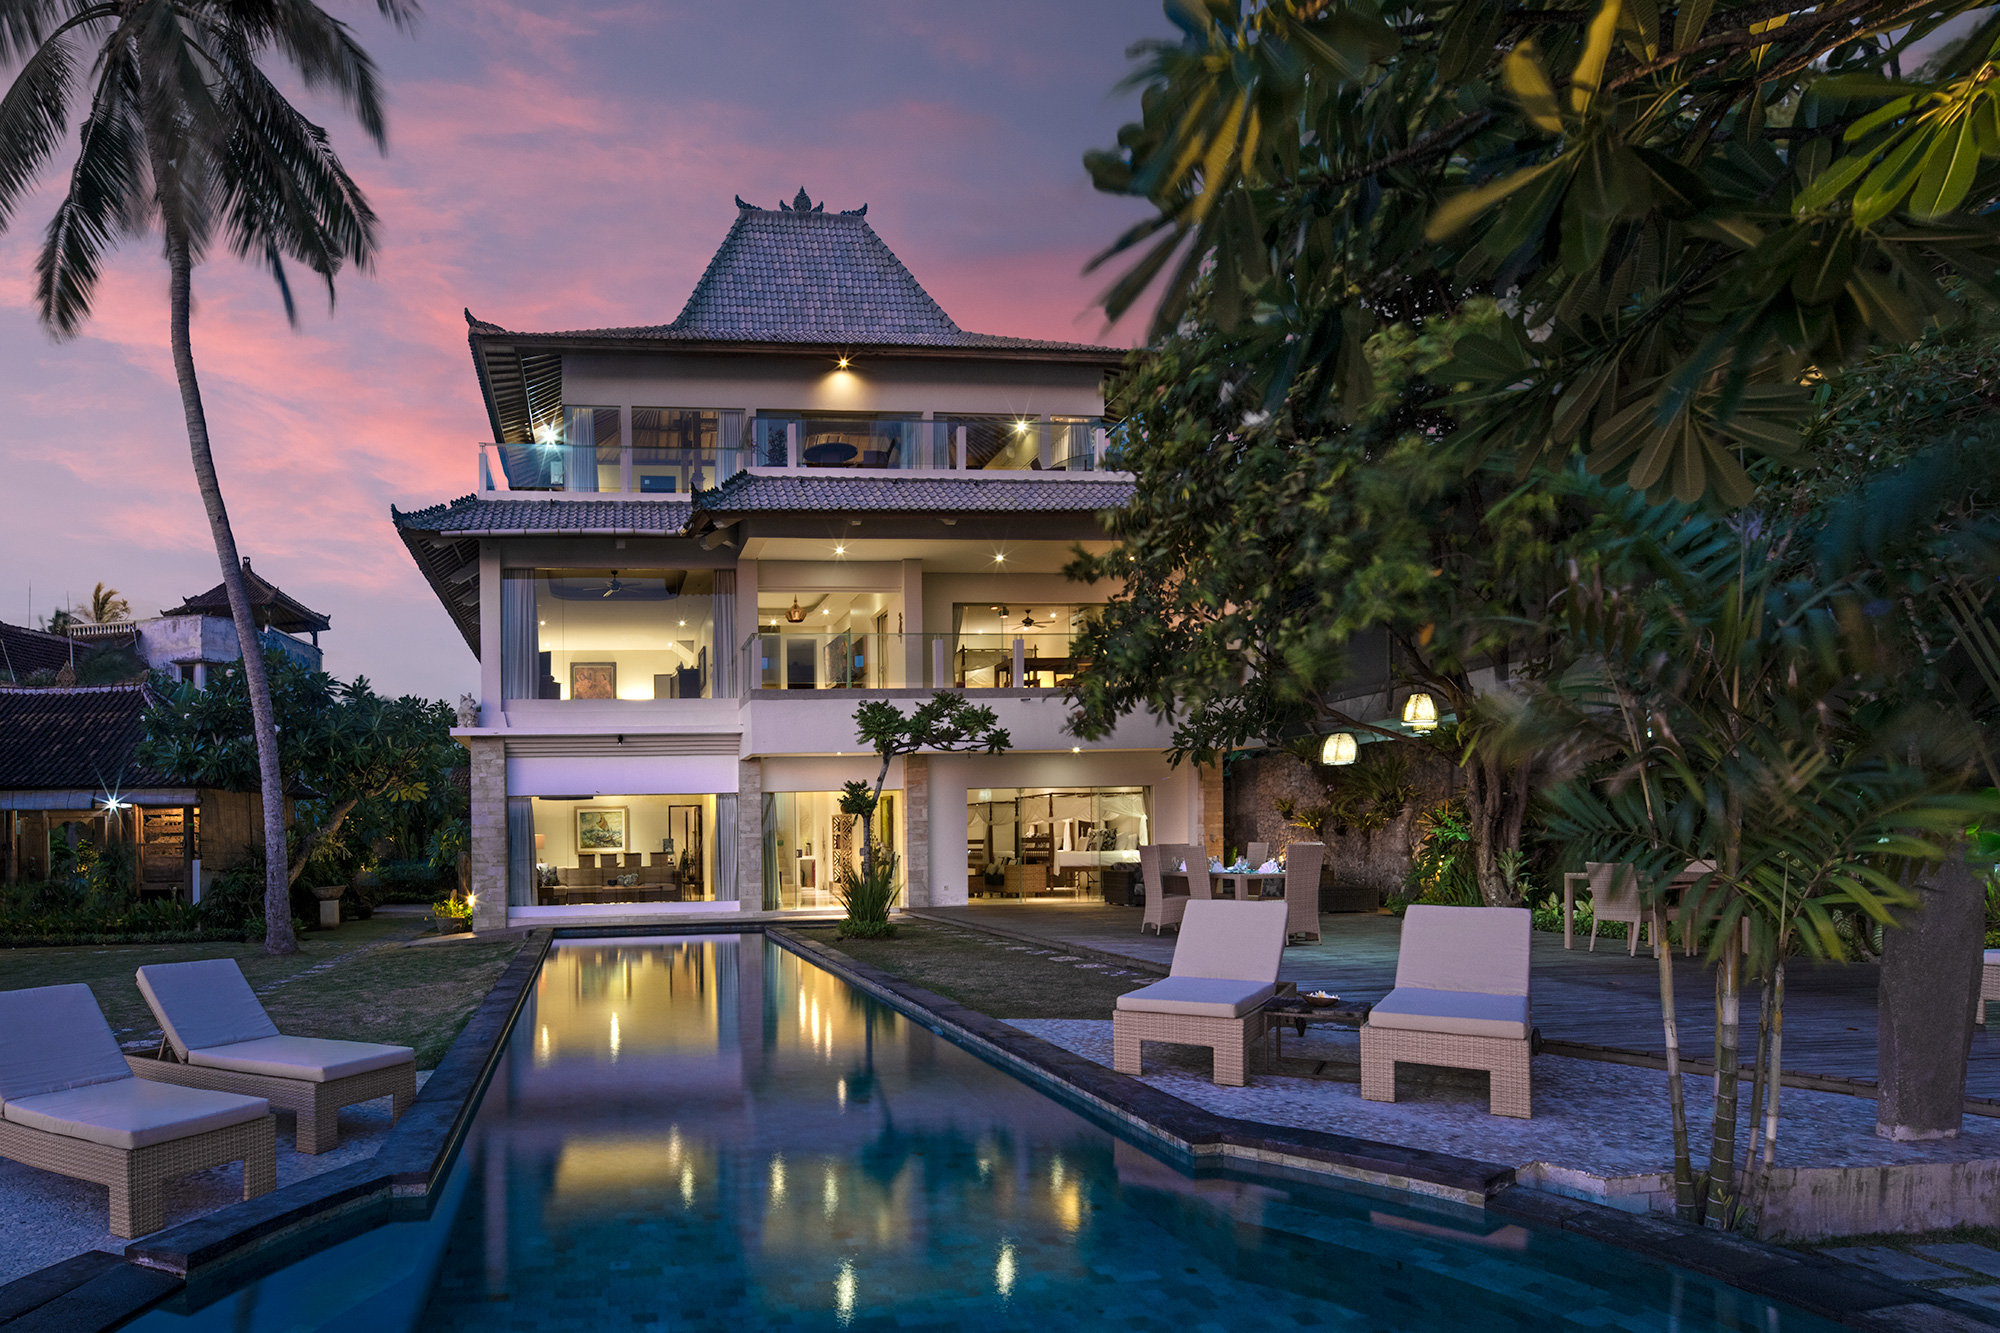 Villa Cocoa Maya, Candidasa, Bali, the villa at dusk